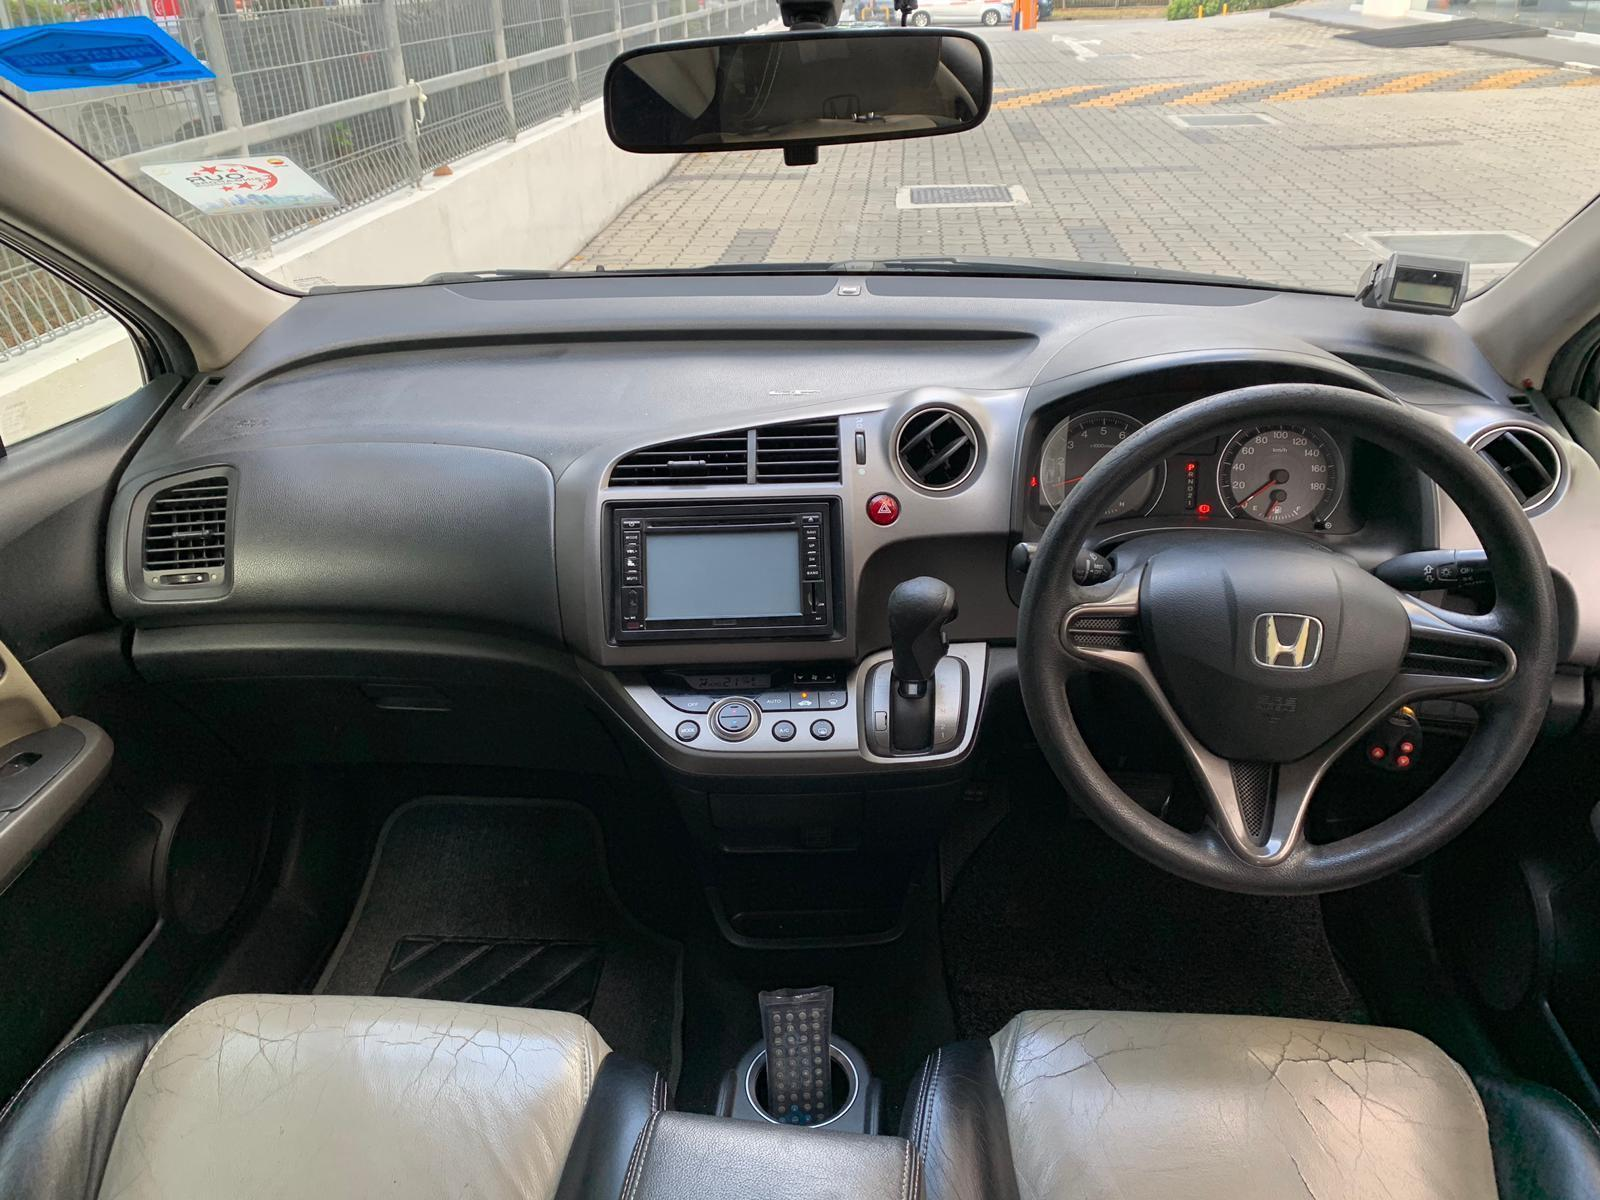 Honda Stream RENTING OUT THE CHEAPEST VEHICLE FOR Grab/Ryde/Personal USAGE